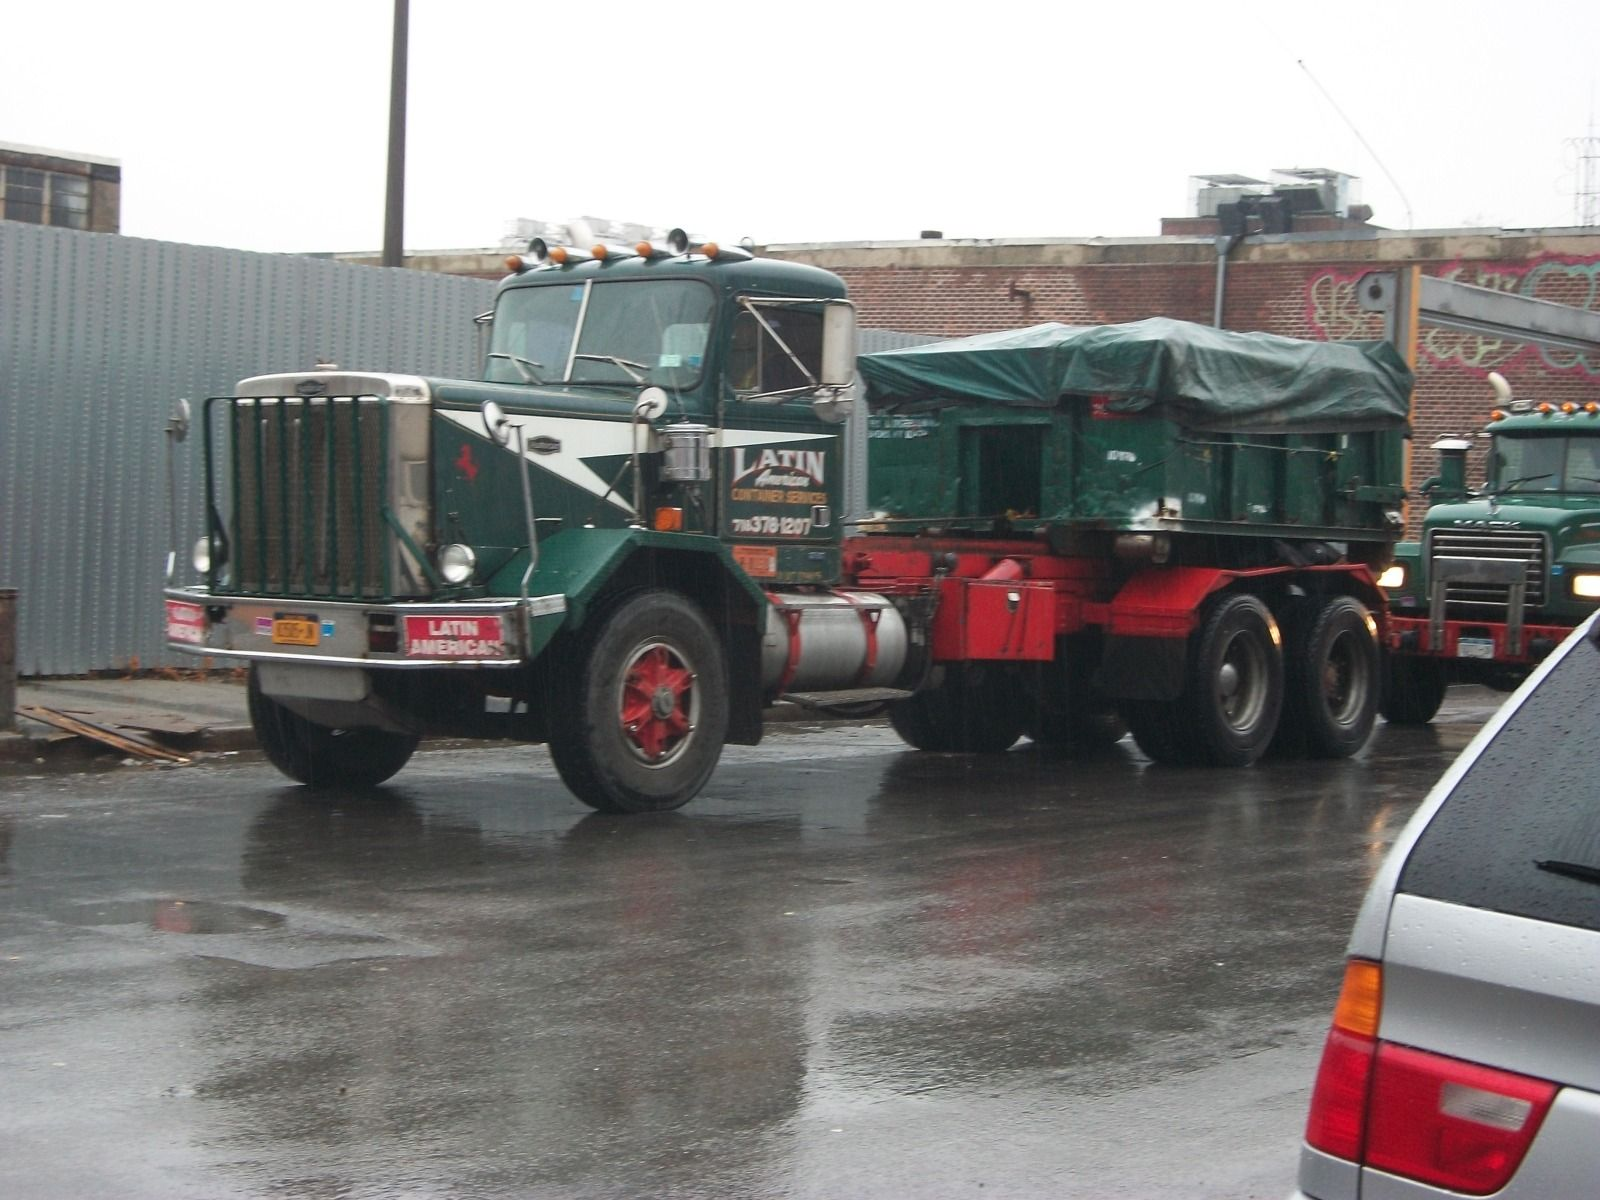 Hanks Truck Pictures Ny Re Rafael S Truck Pictures Of Ny And